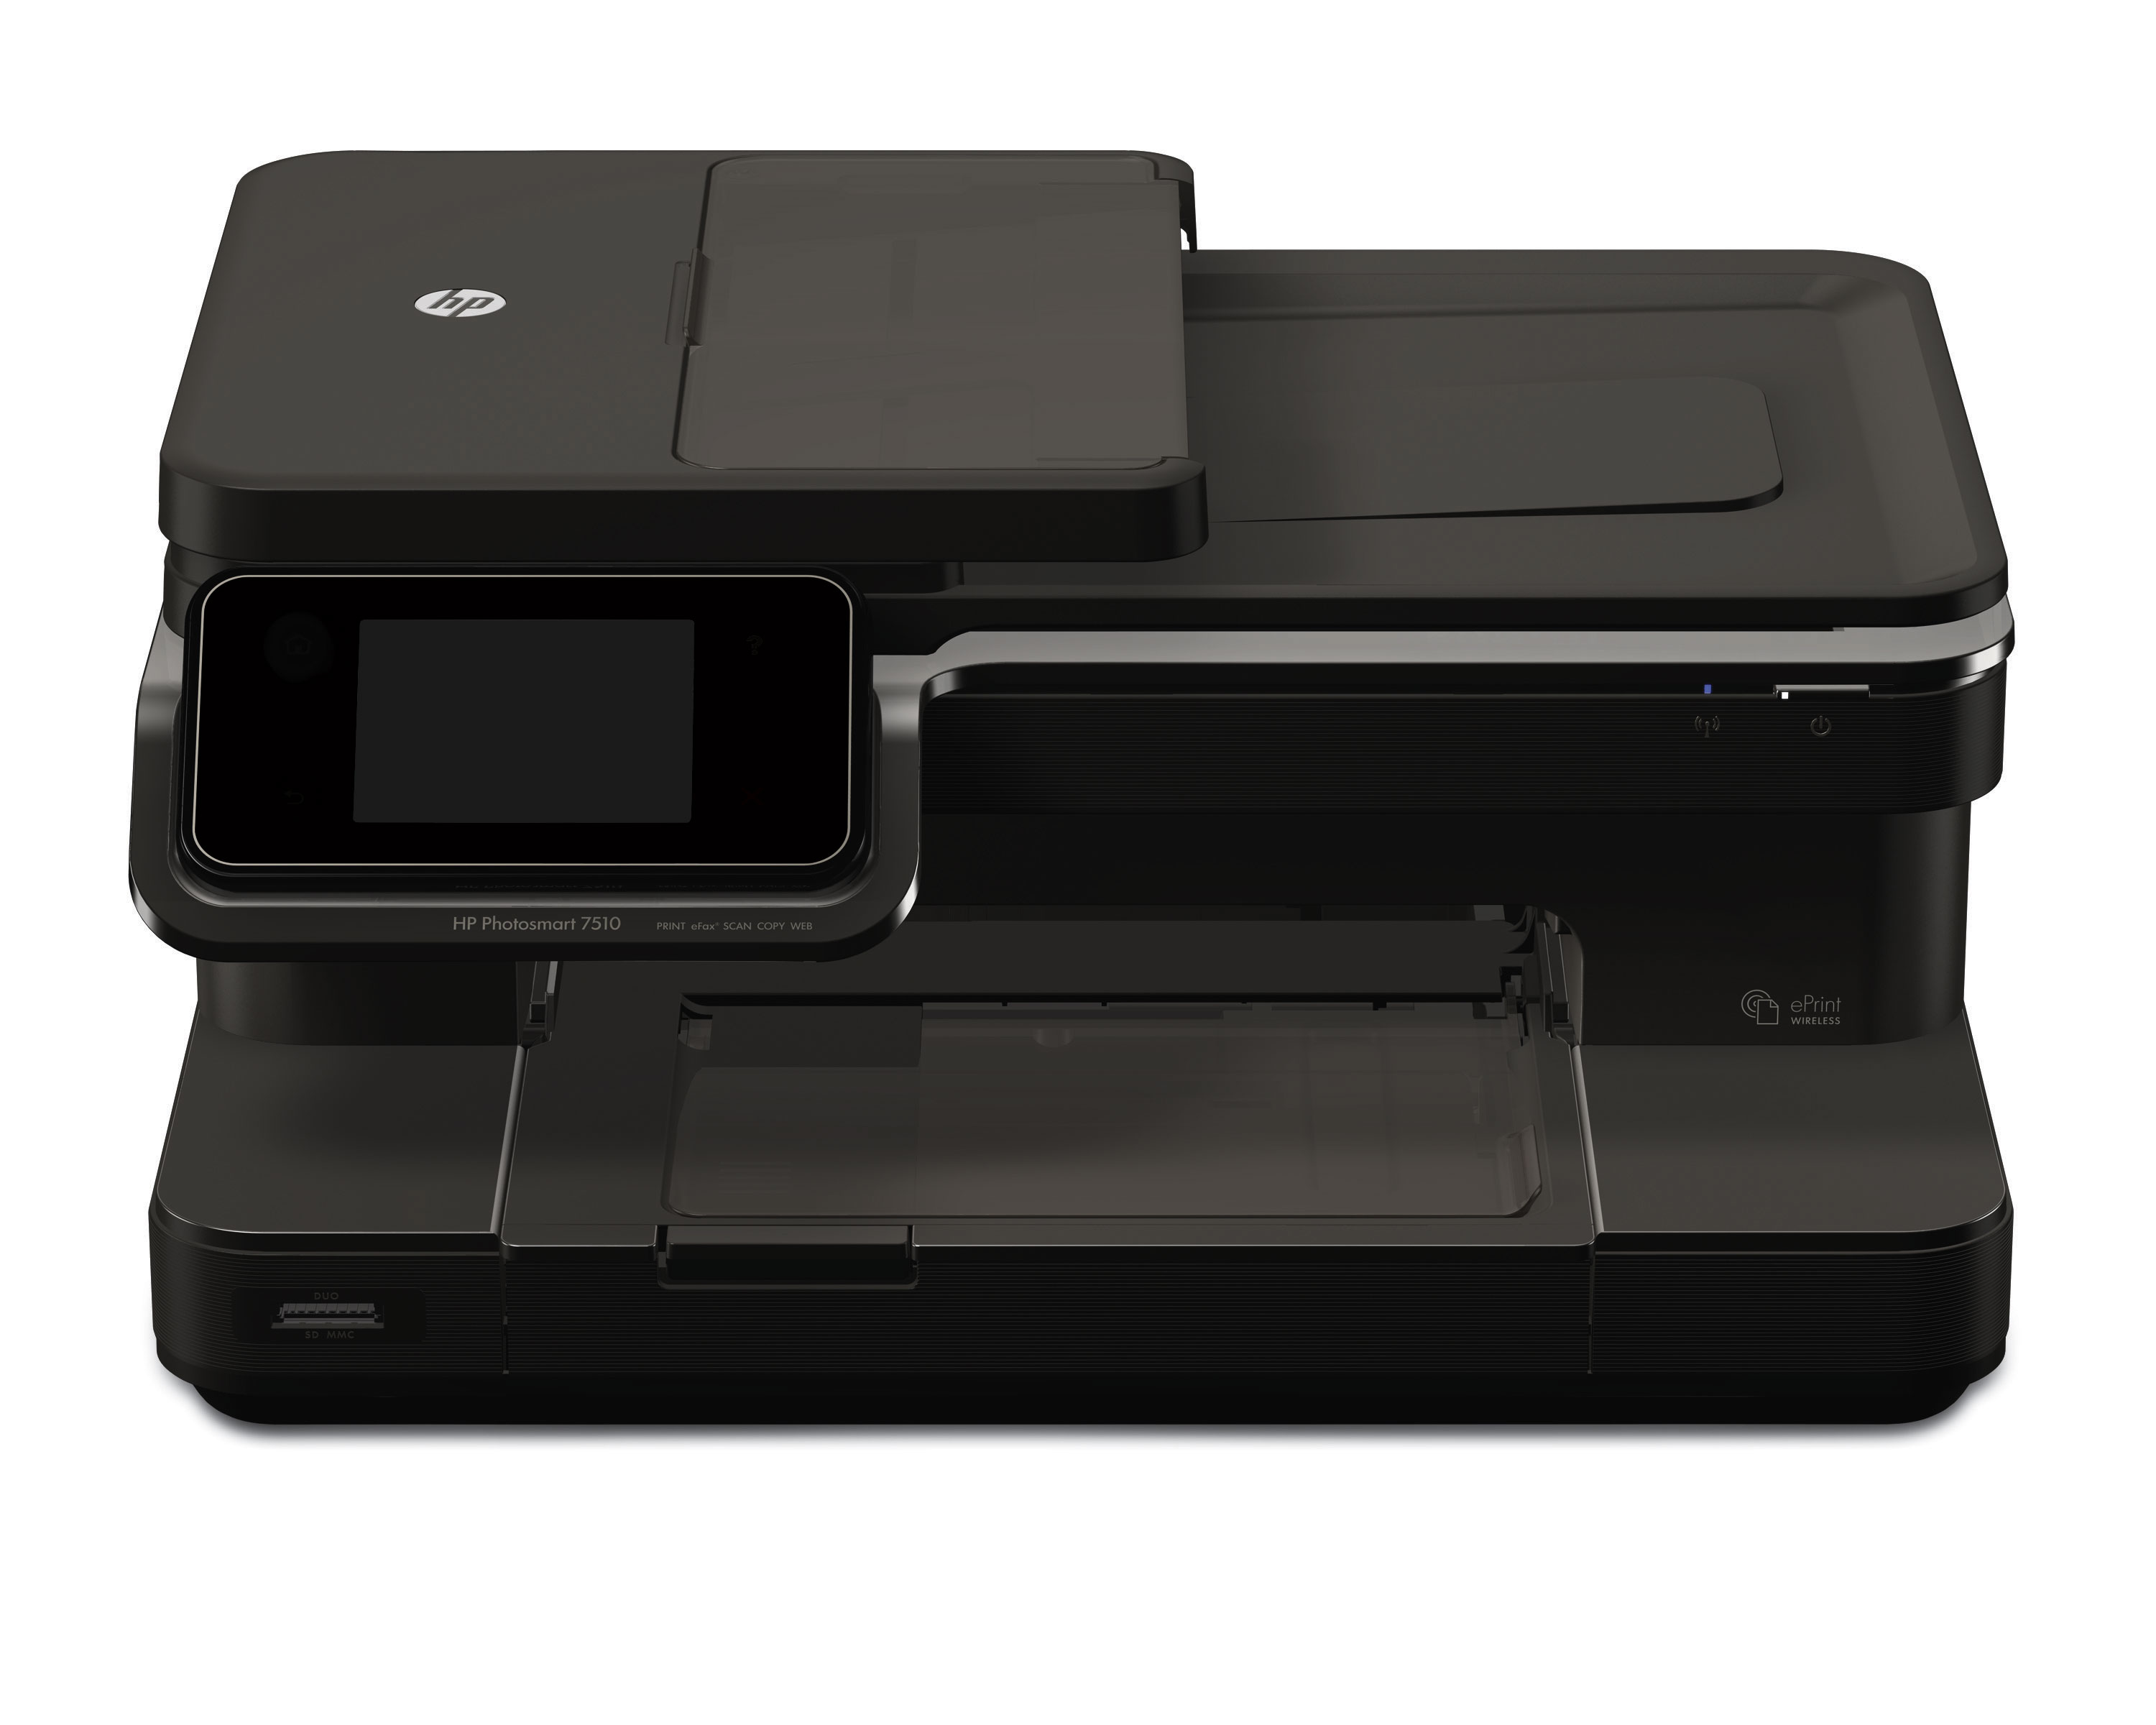 how to connect hp photosmart 7510 printer to wifi